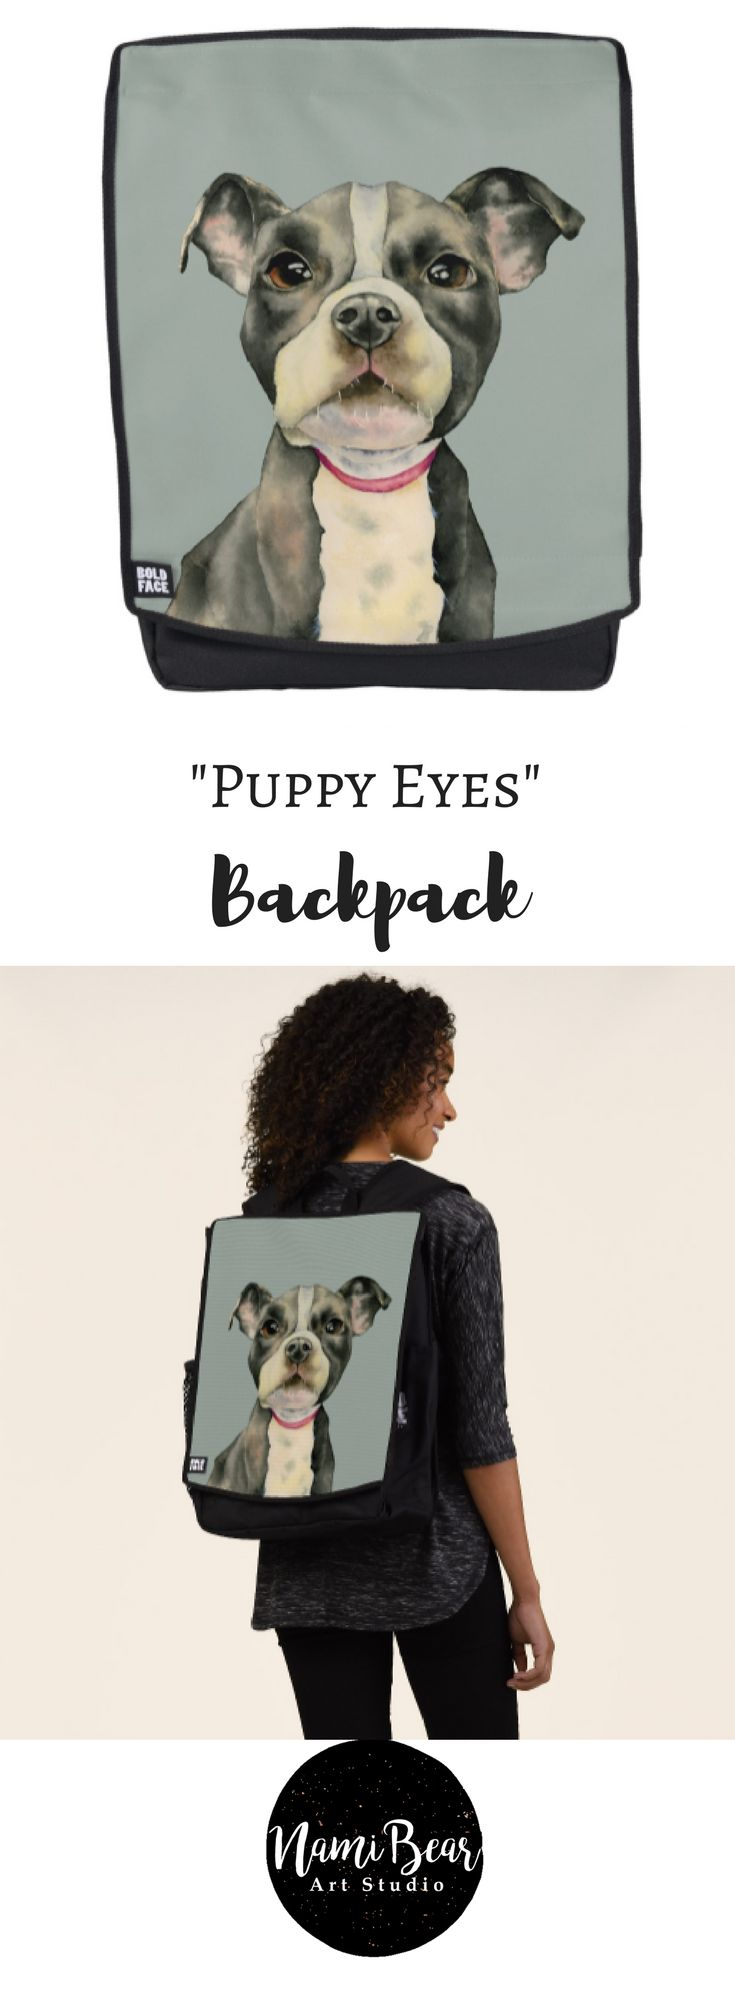 """""""Puppy Eyes"""" Pit Bull Dog Watercolor Painting Backpack This is a watercolor painting of a black and white pit bull puppy. It is a close up of the dog with large hopeful looking eyes. This was painted on Arched hot pressed paper with Daniel Smith watercolor paints. #dog #dogs #dogLovers #pet #pets #illustrations #illustration #gift #gifts #giftideas #giftforher #animal #animals #puppy #puppies #pitbull #pitbulls"""